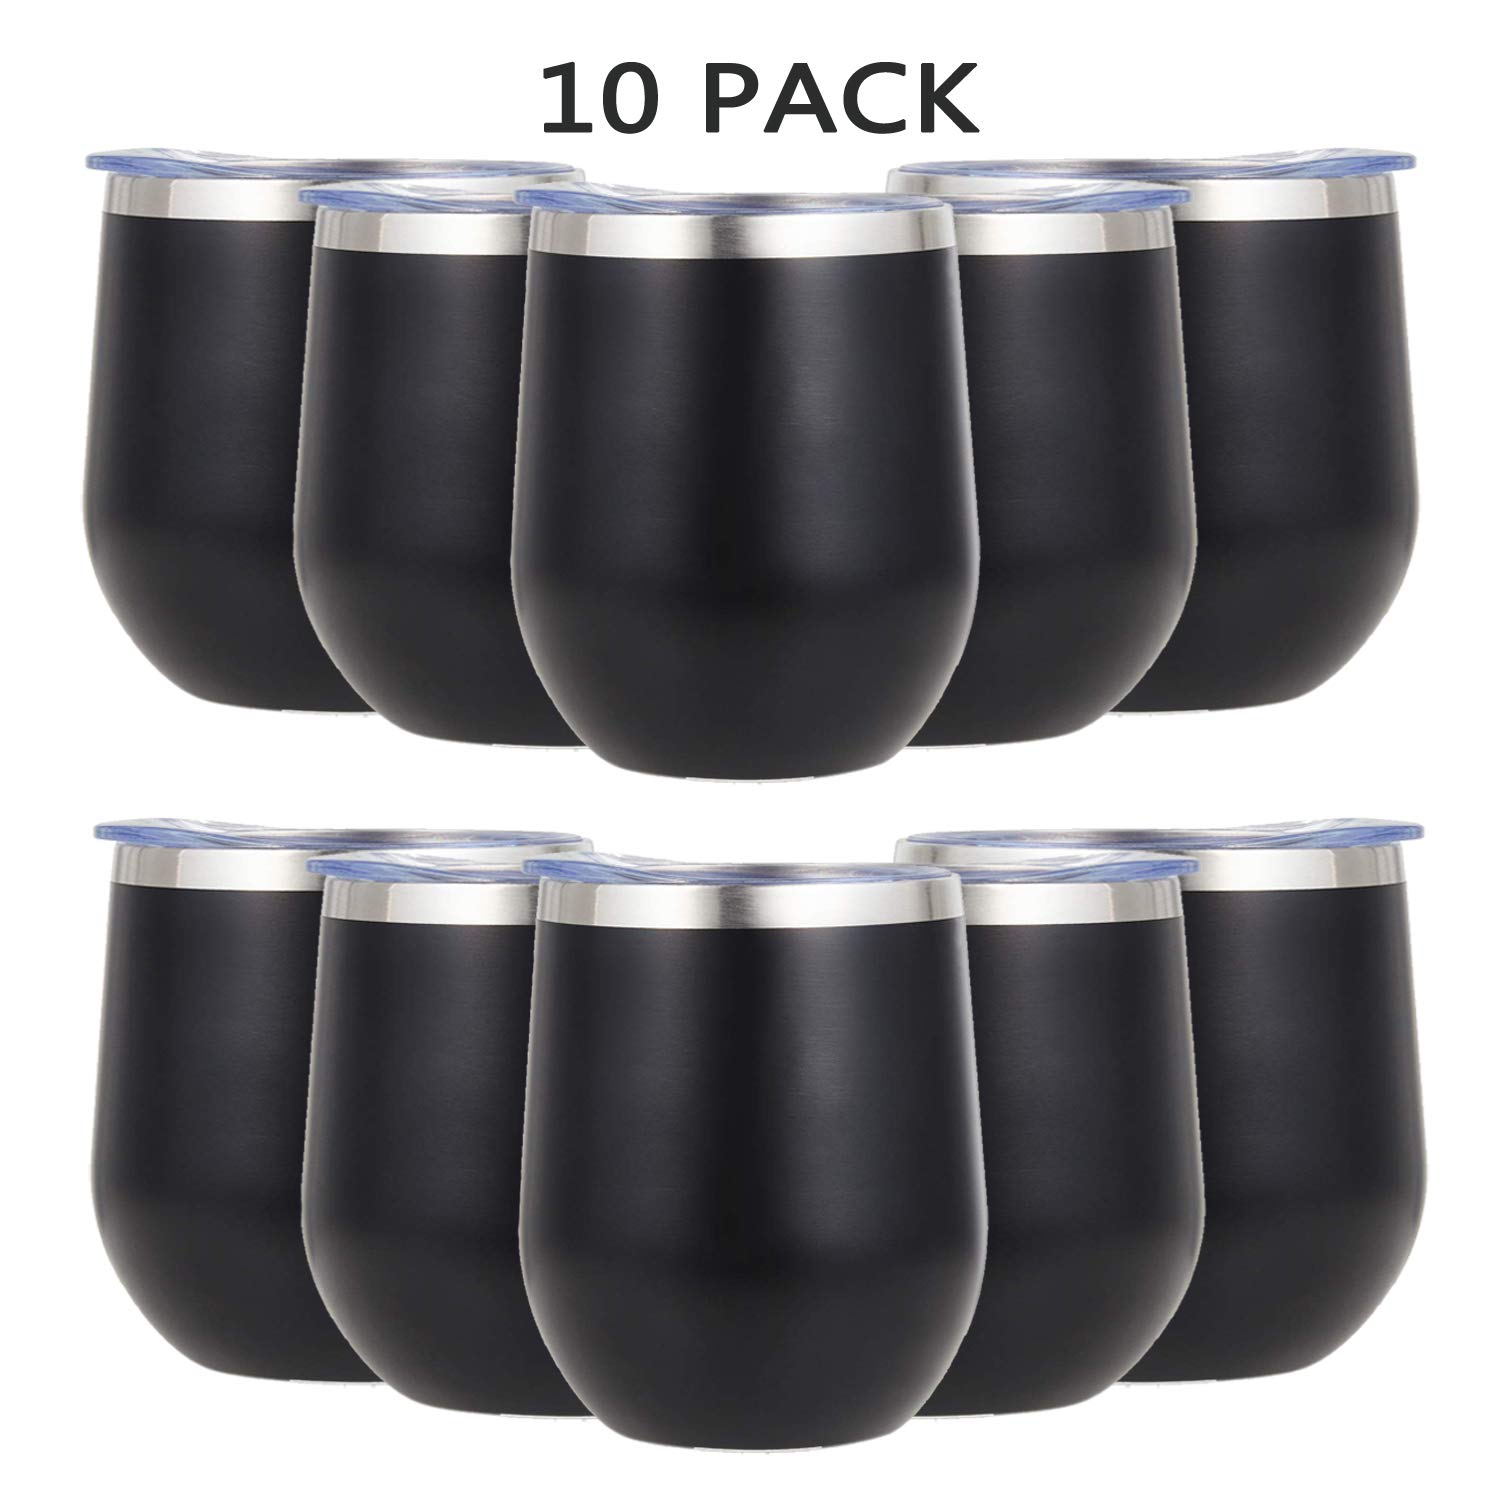 ONEB Stainless Steel Wine Tumbler with Lid, 12 OZ | Double Wall Vacuum Insulated Travel Tumbler Cup for Coffee, Wine, Cocktails, Ice Cream Thermos Cup With Lid (Black/10 pack)